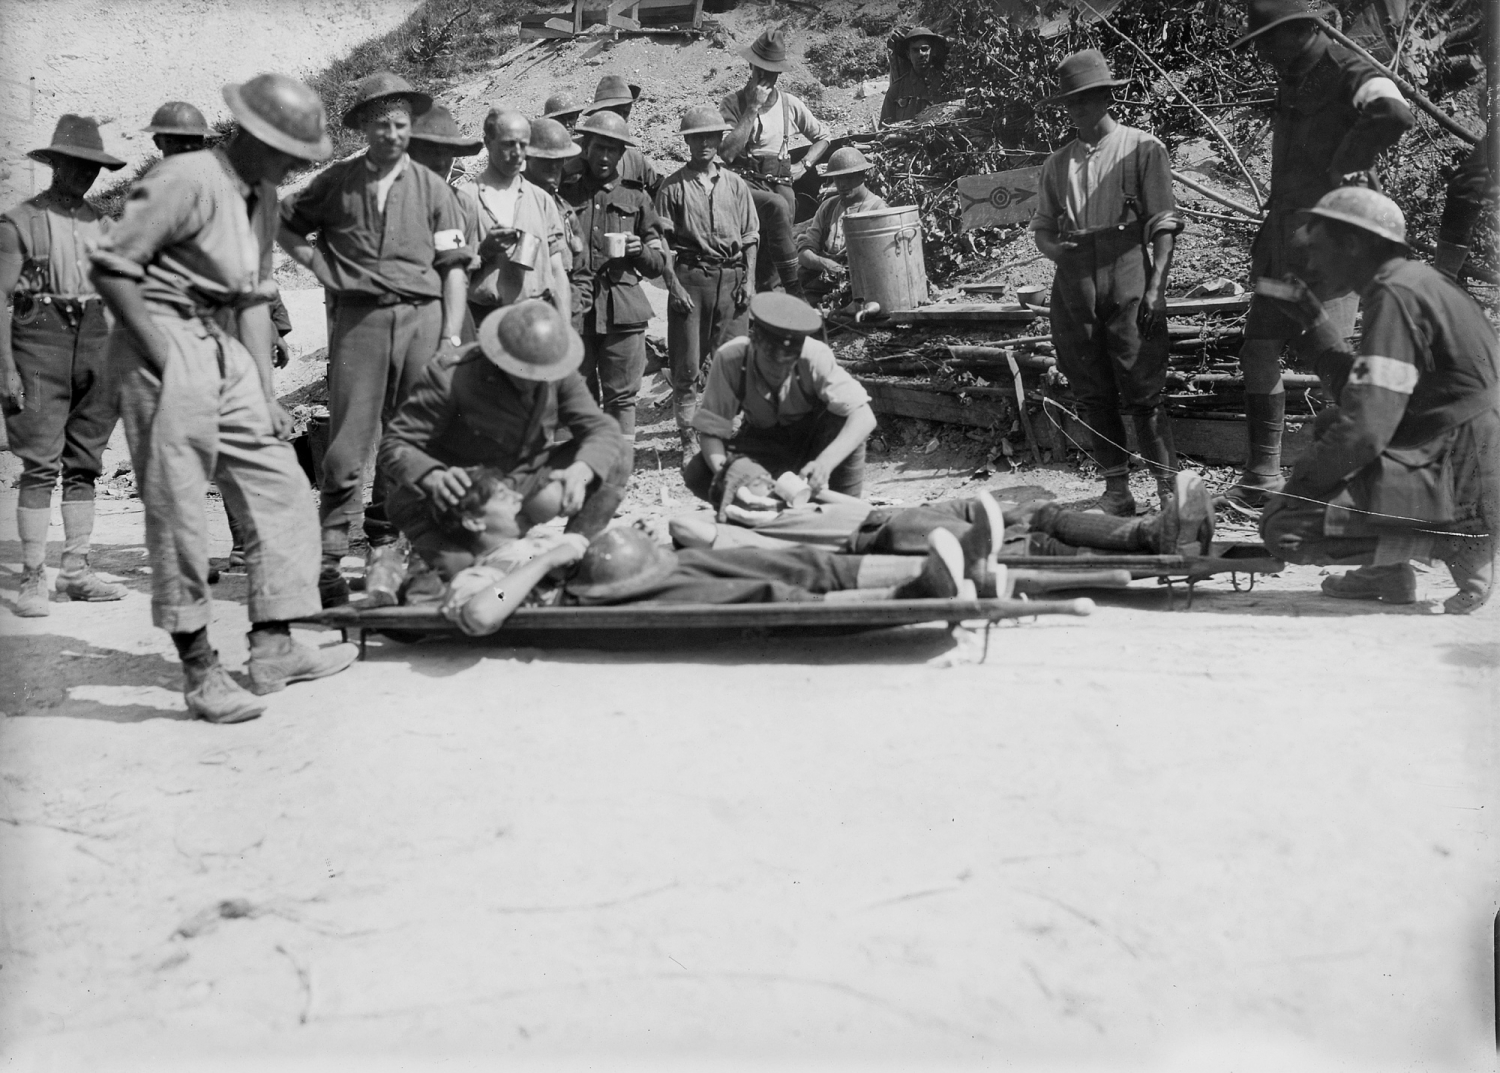 Men tending to injured soldiers lying on stretchers on ground outdoors.